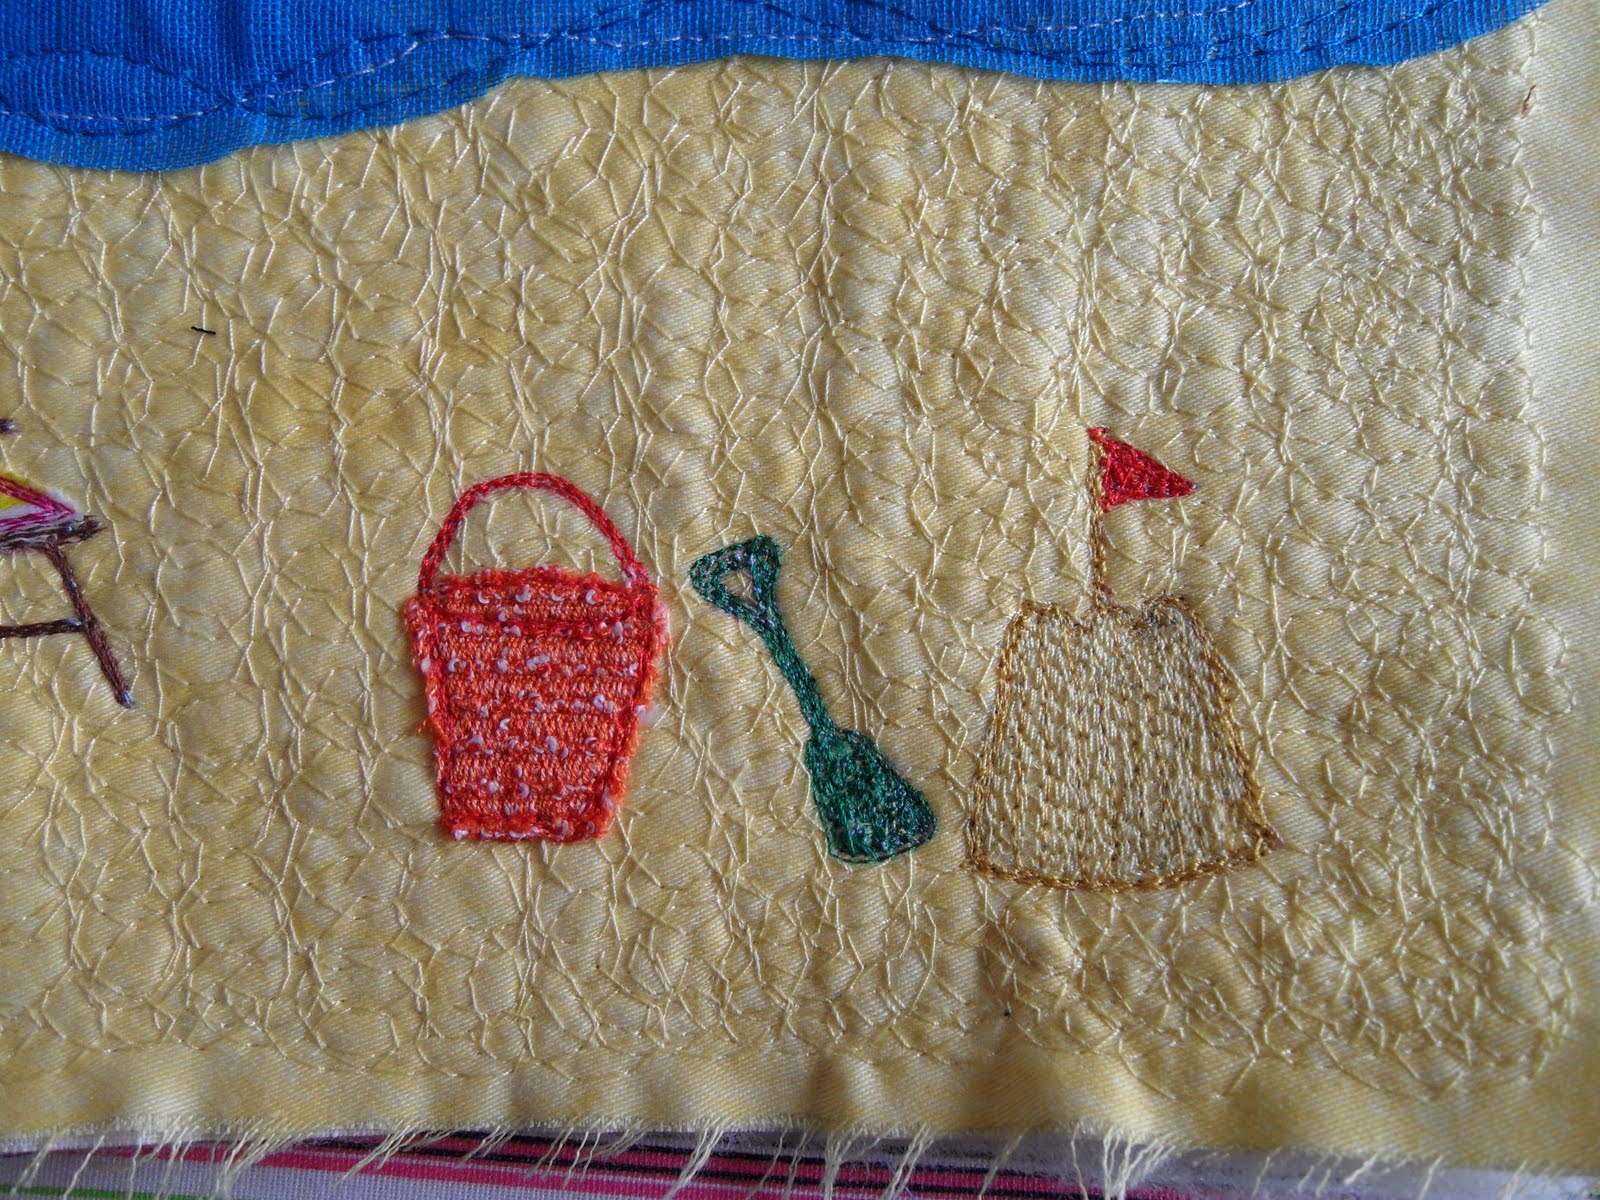 A Sand Castle And A Spadequite Fiddly To Embroider Neatly, But I Managed It